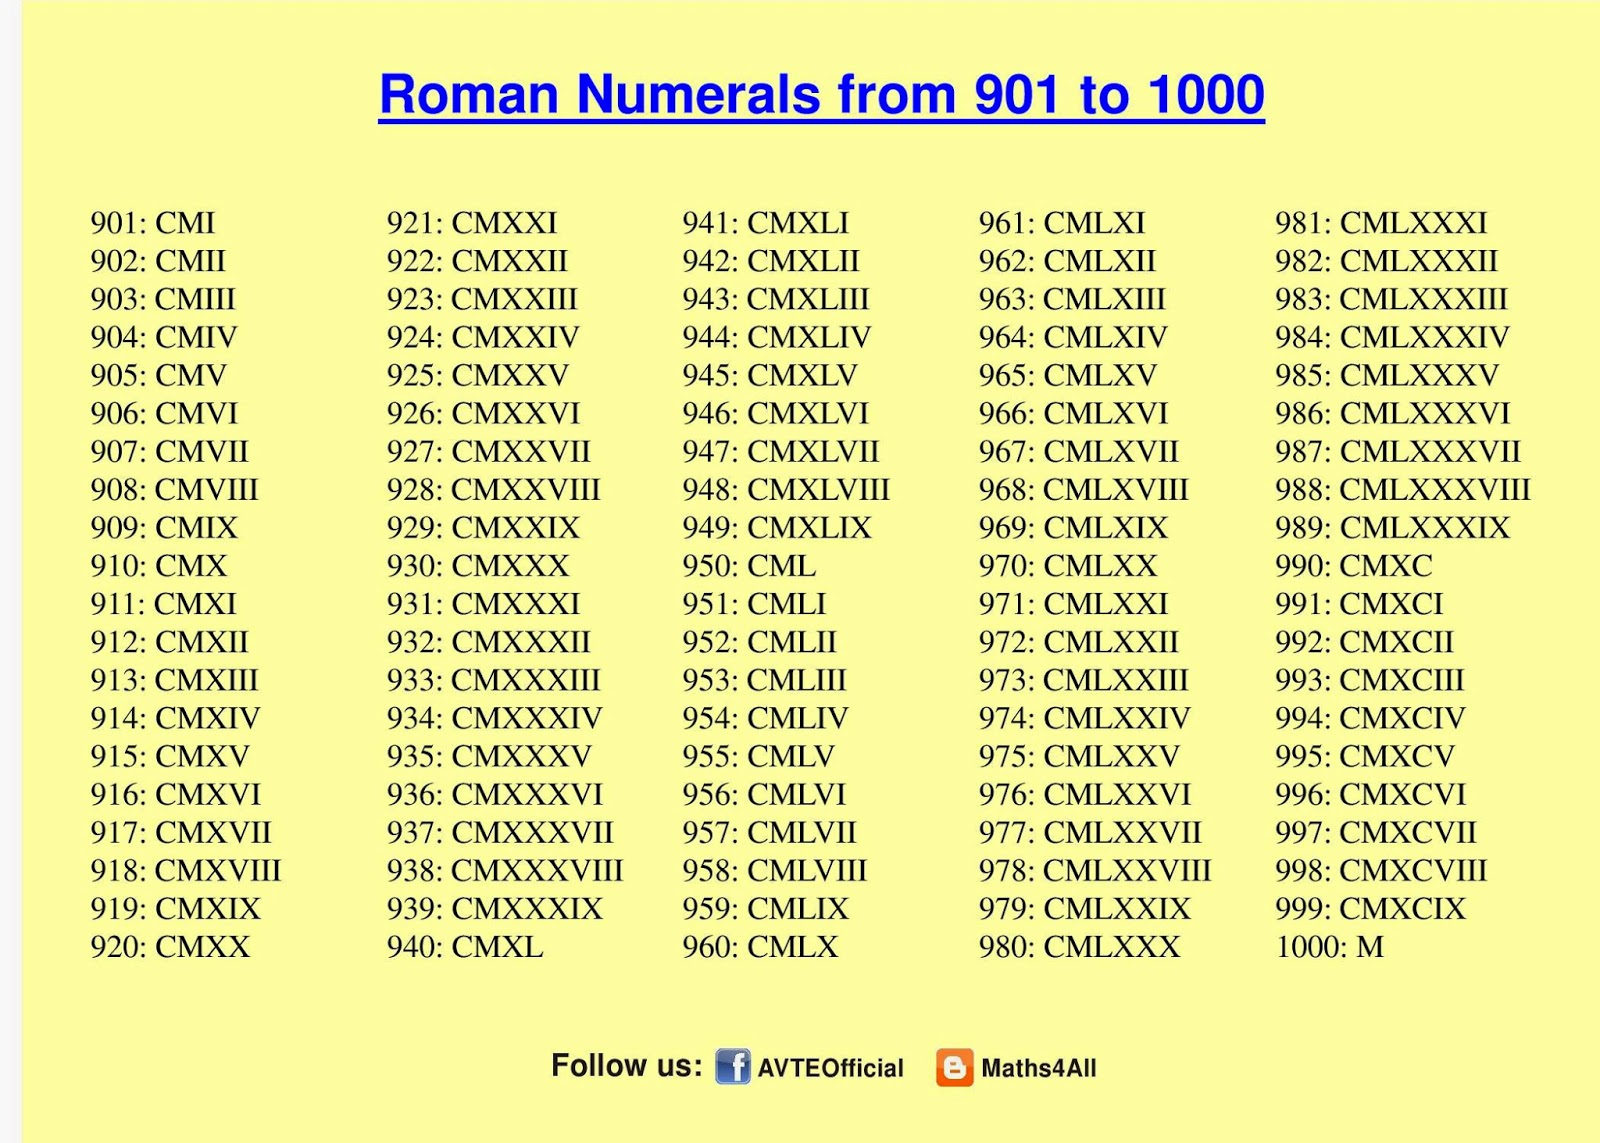 In Roman Number